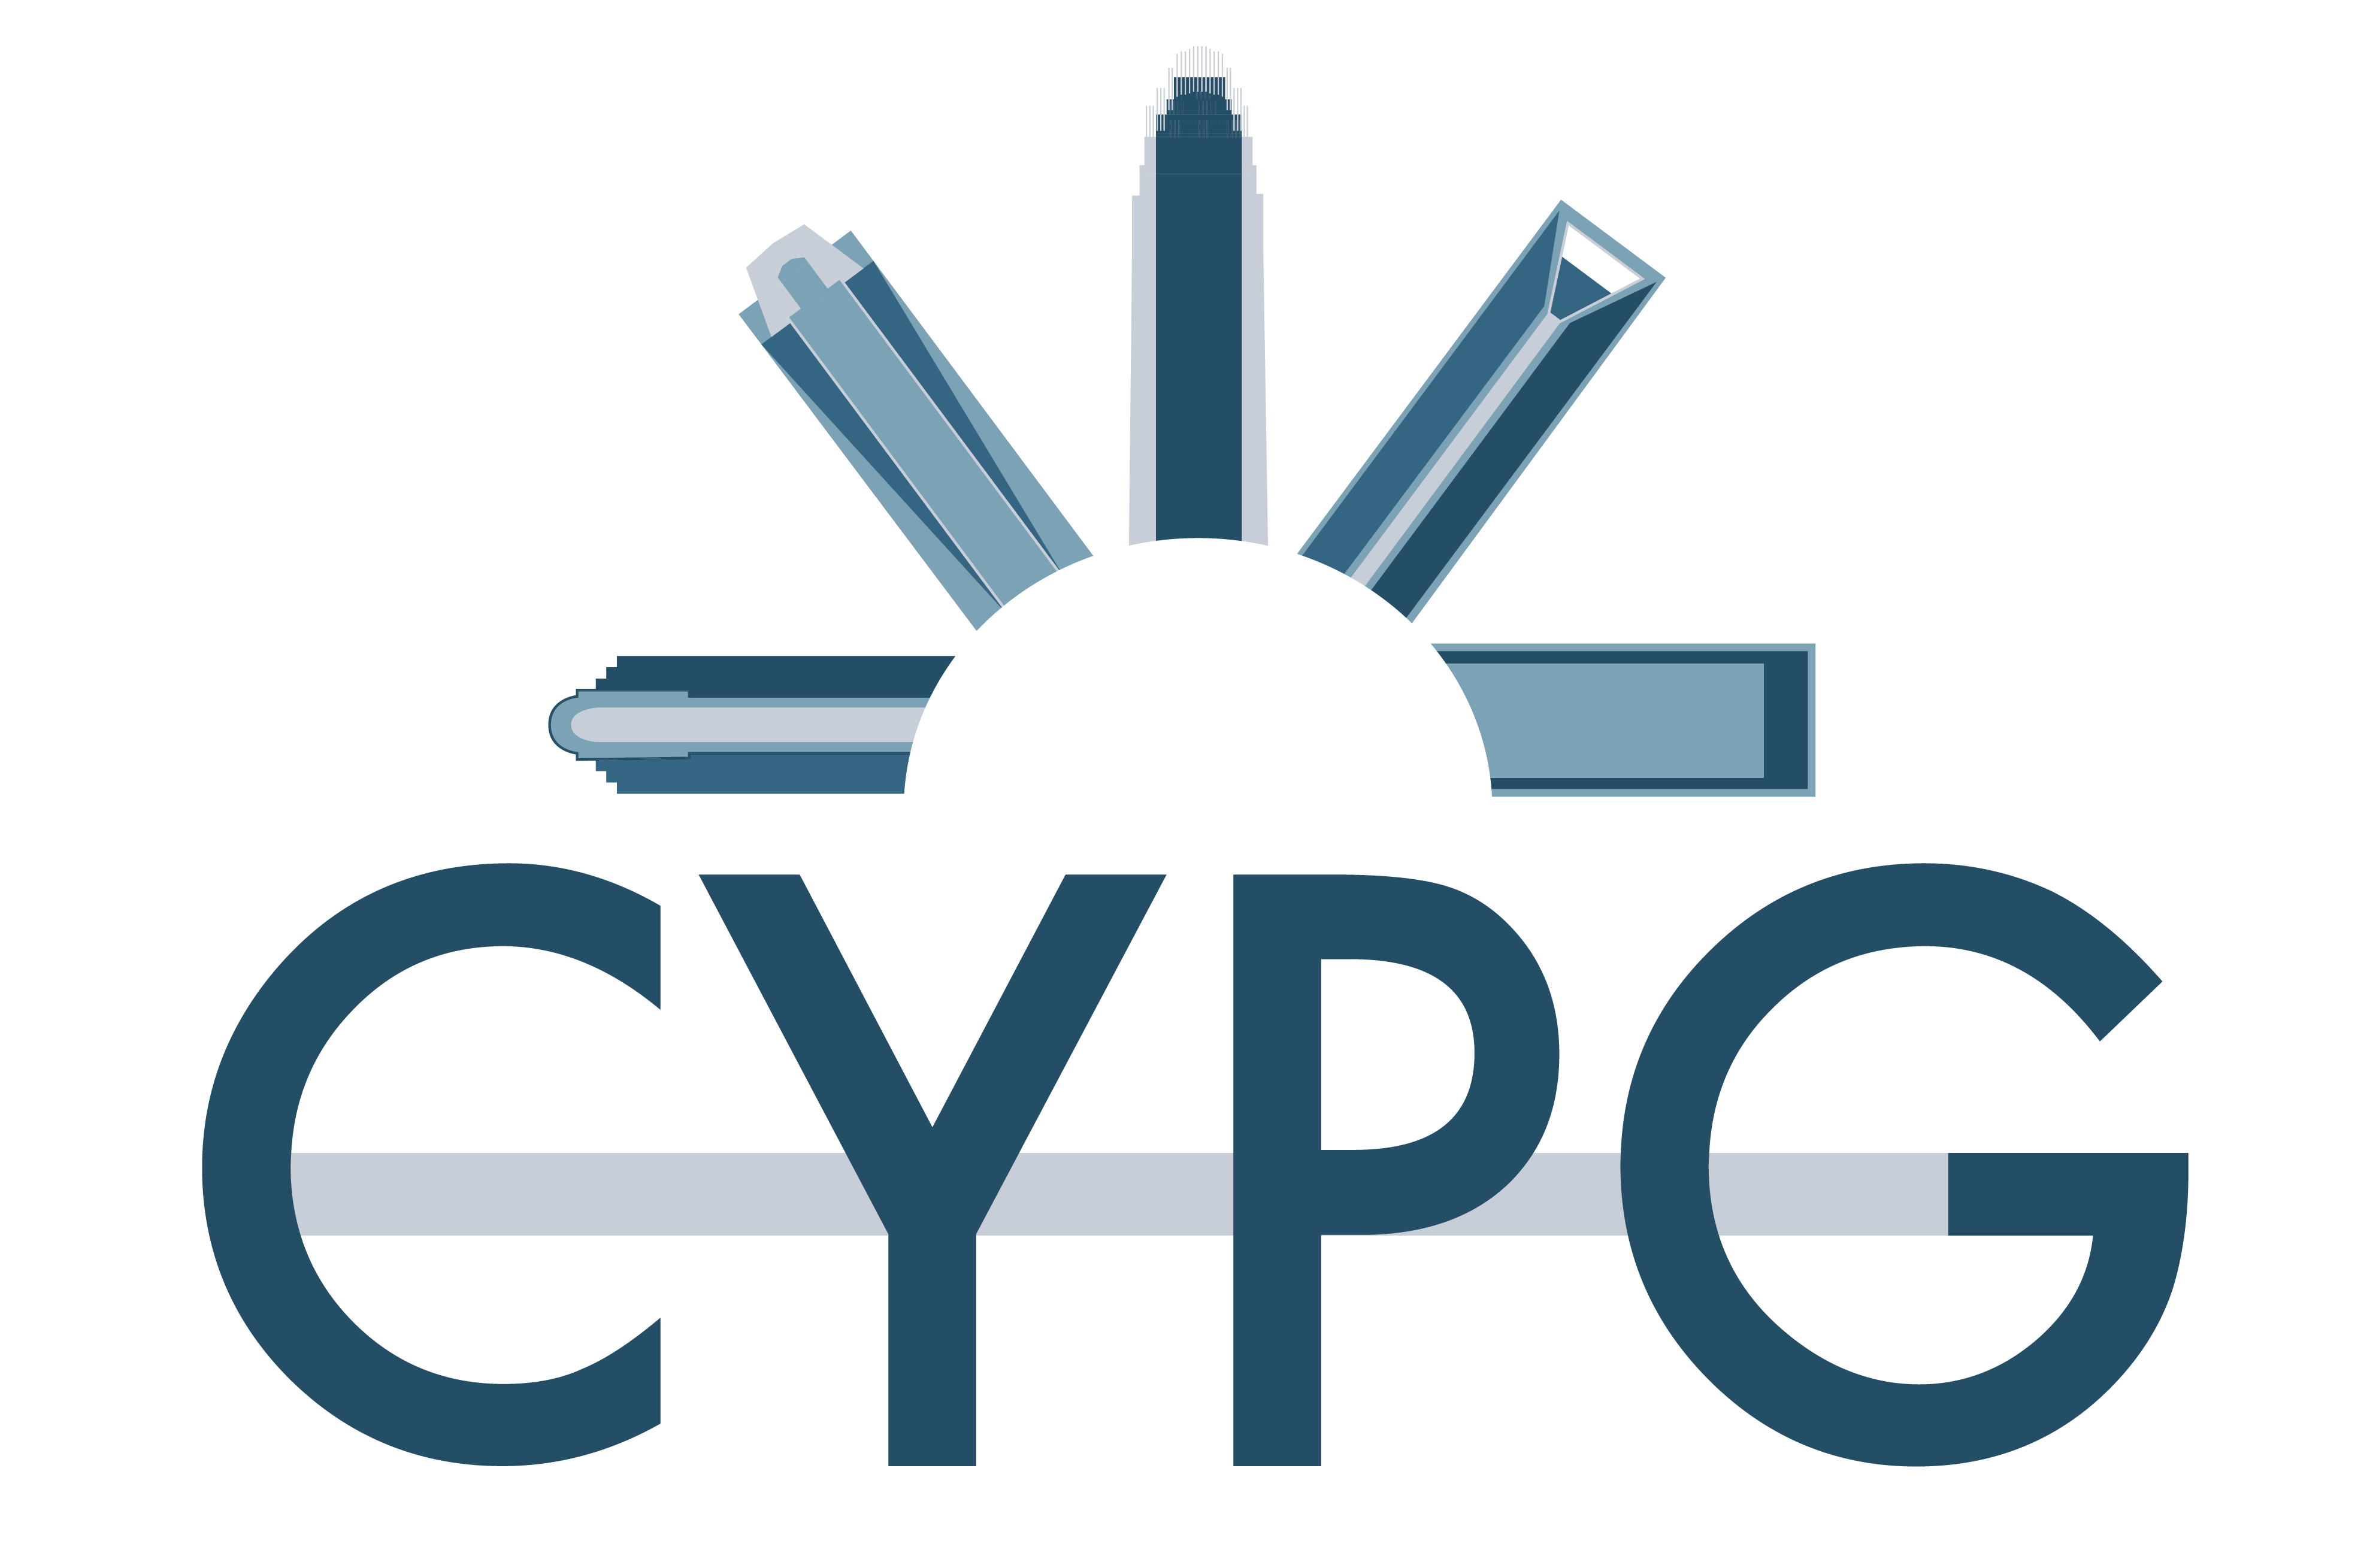 The Charlotte Young Professionals Group logo